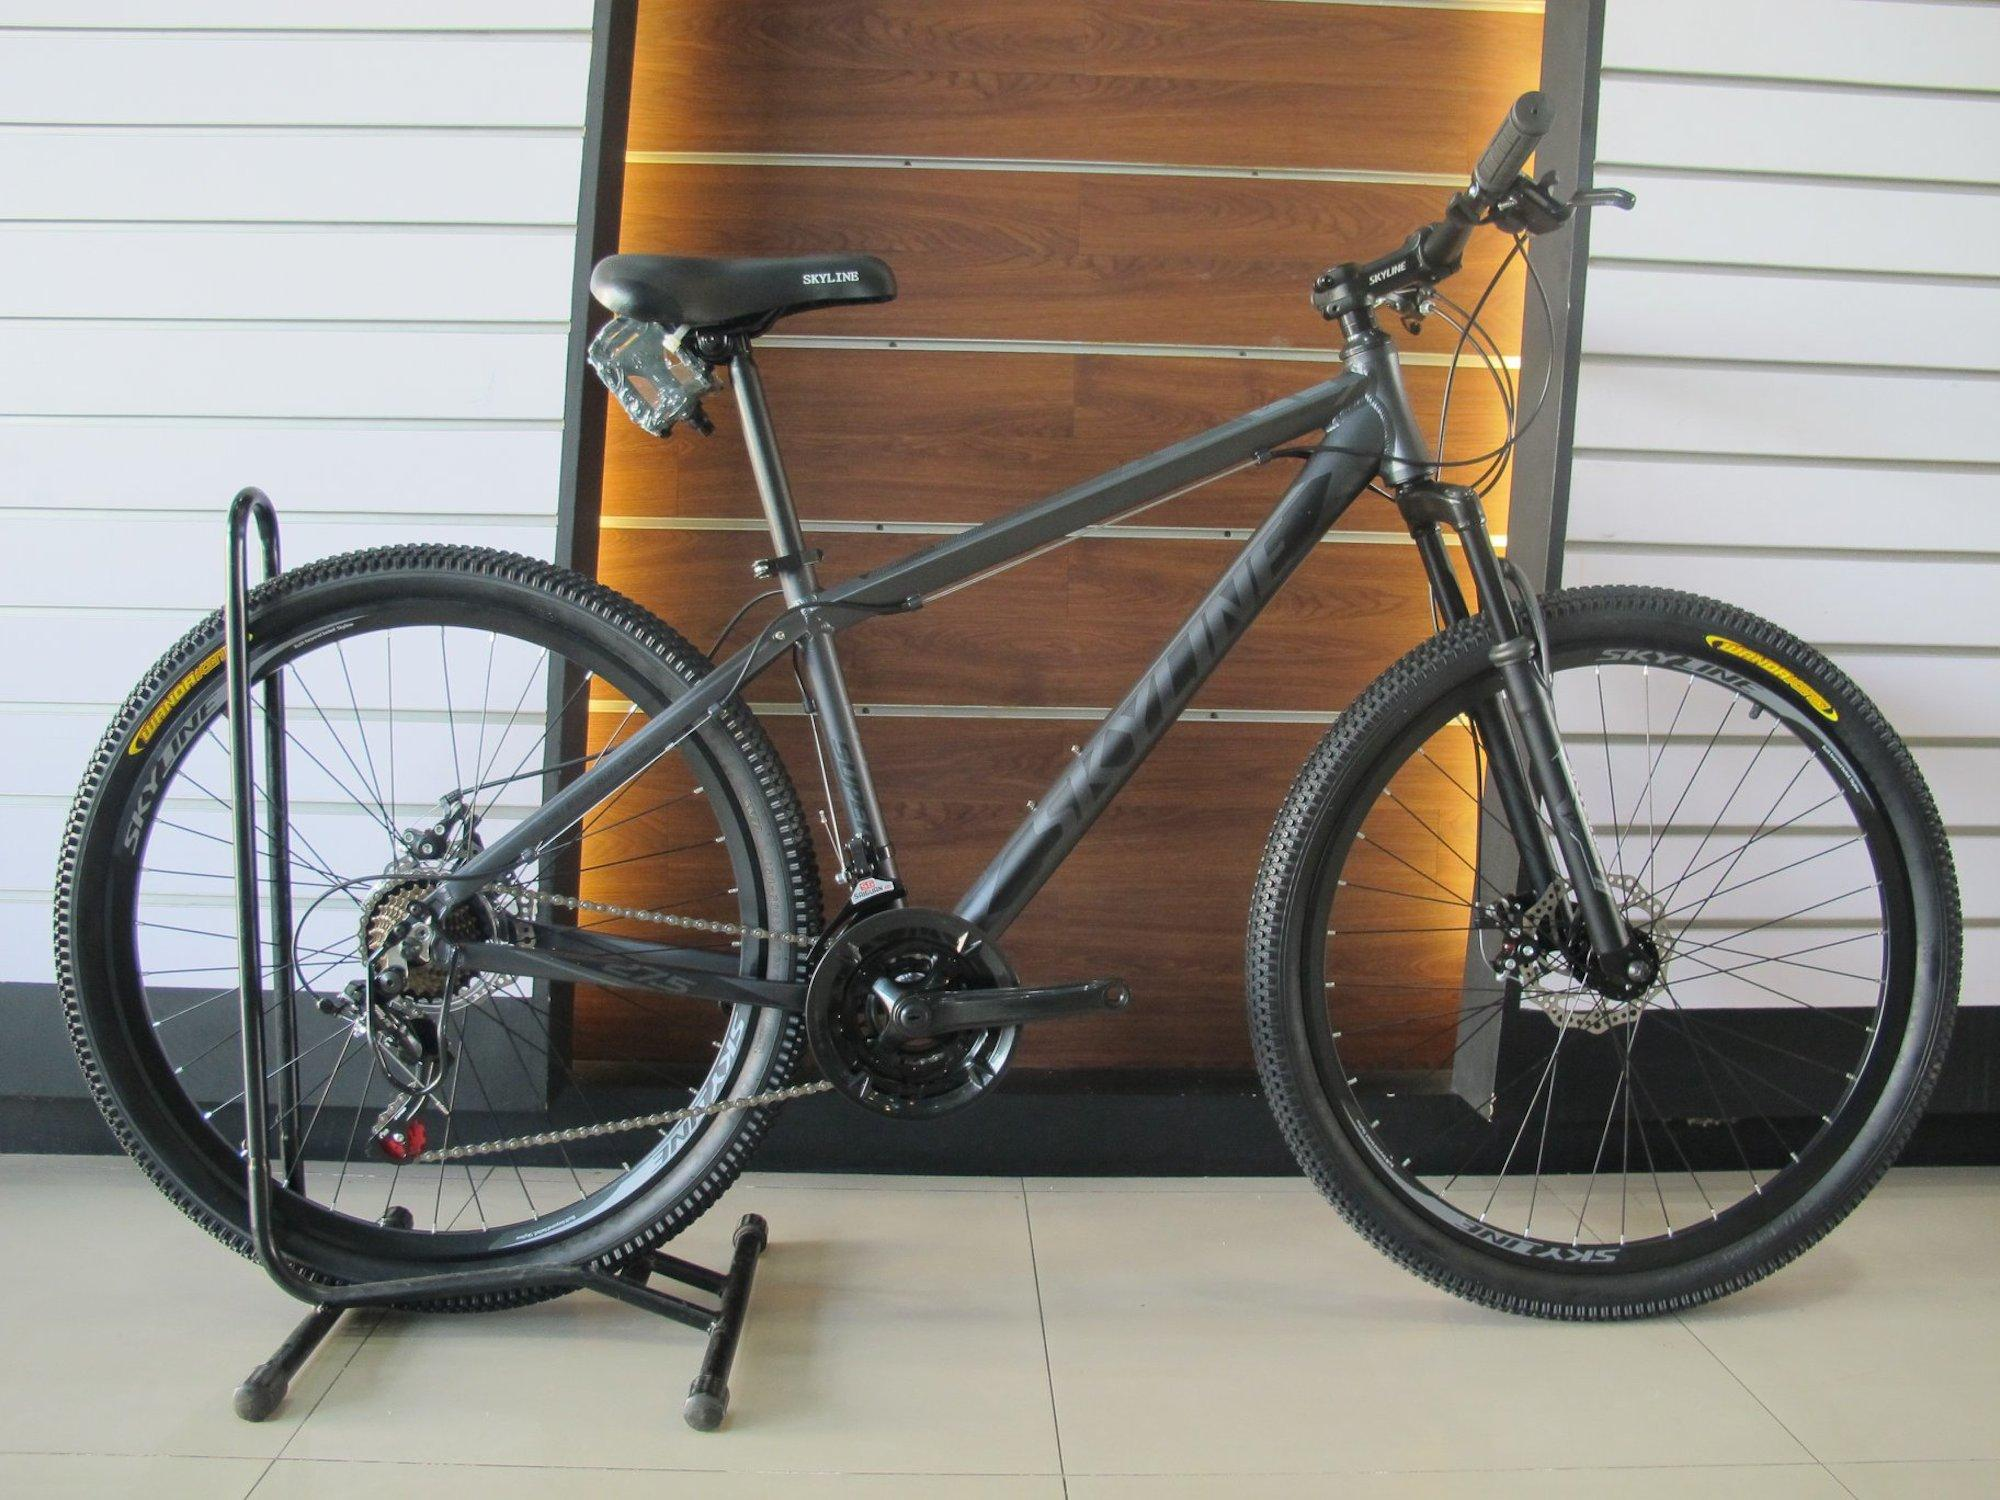 f78864ca7c9 Bike for sale - Bicycle Online Deals & Prices in Philippines ...